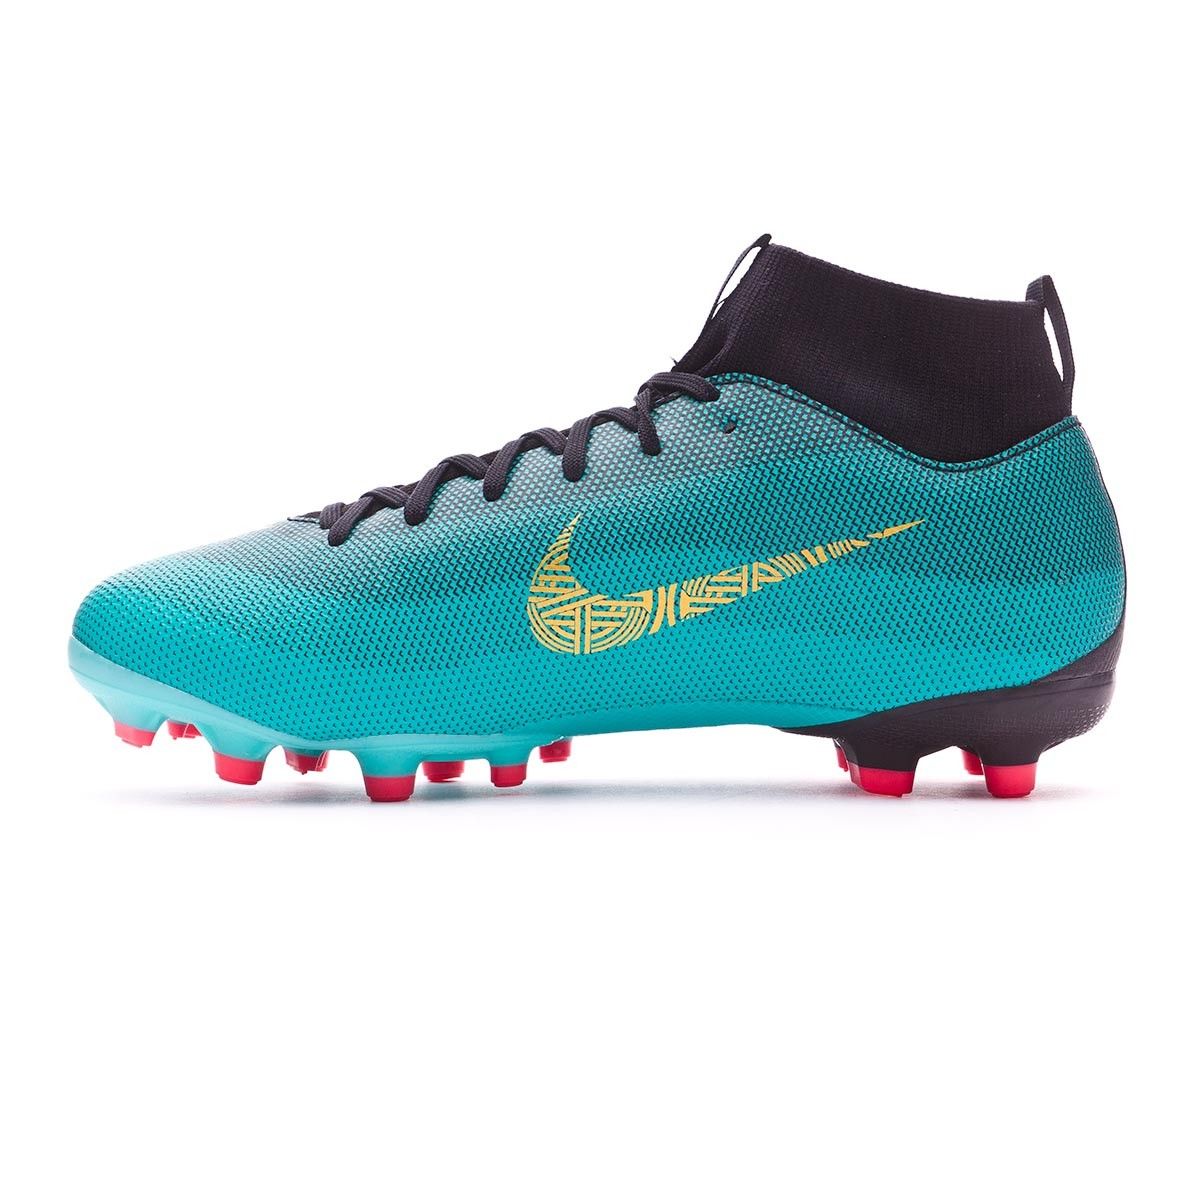 get cheap ba6df a7bae Football Boots Nike Kids Mercurial Superfly VI Academy GS CR7 MG Clear  jade-Metallic vivid gold-Black - Tienda de fútbol Fútbol Emotion